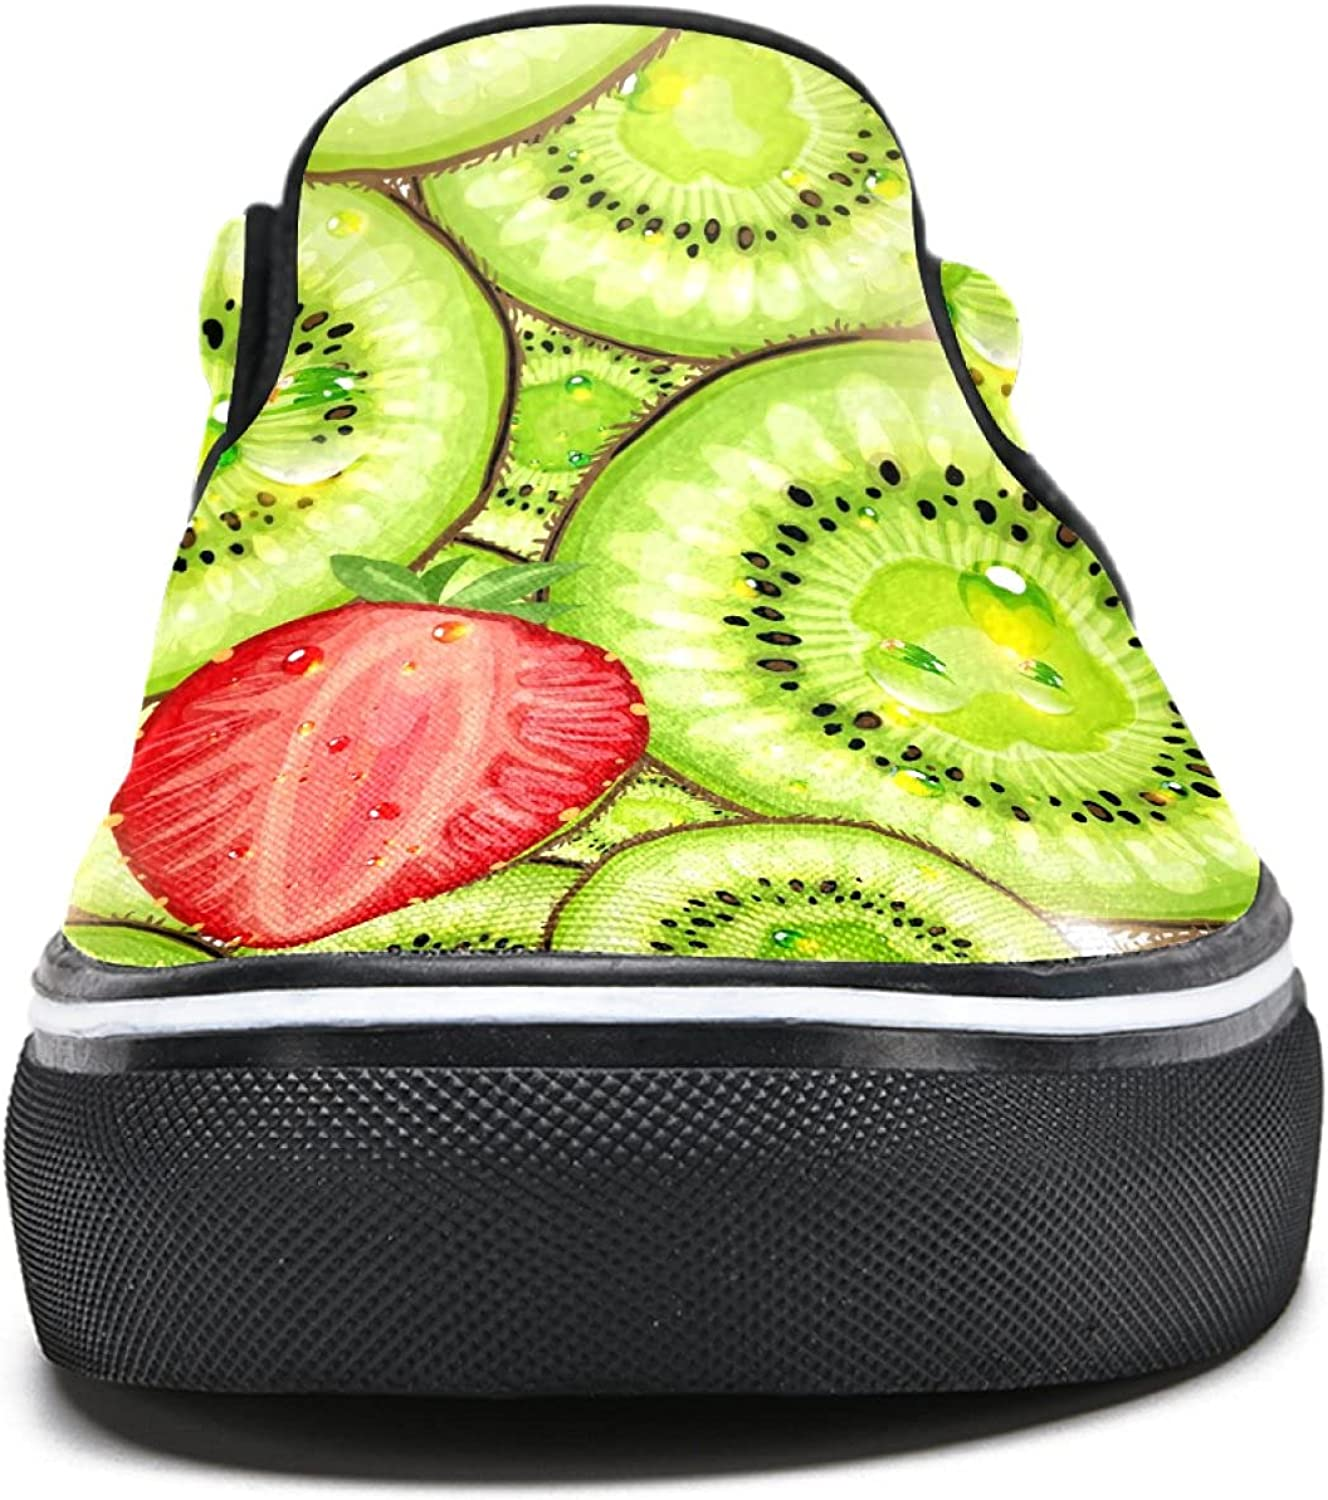 Men's Classic Slip-on Canvas Shoe Fashion Sneaker Casual Walking Shoes Loafers 6.5 Strawberry and Kiwi Patterns